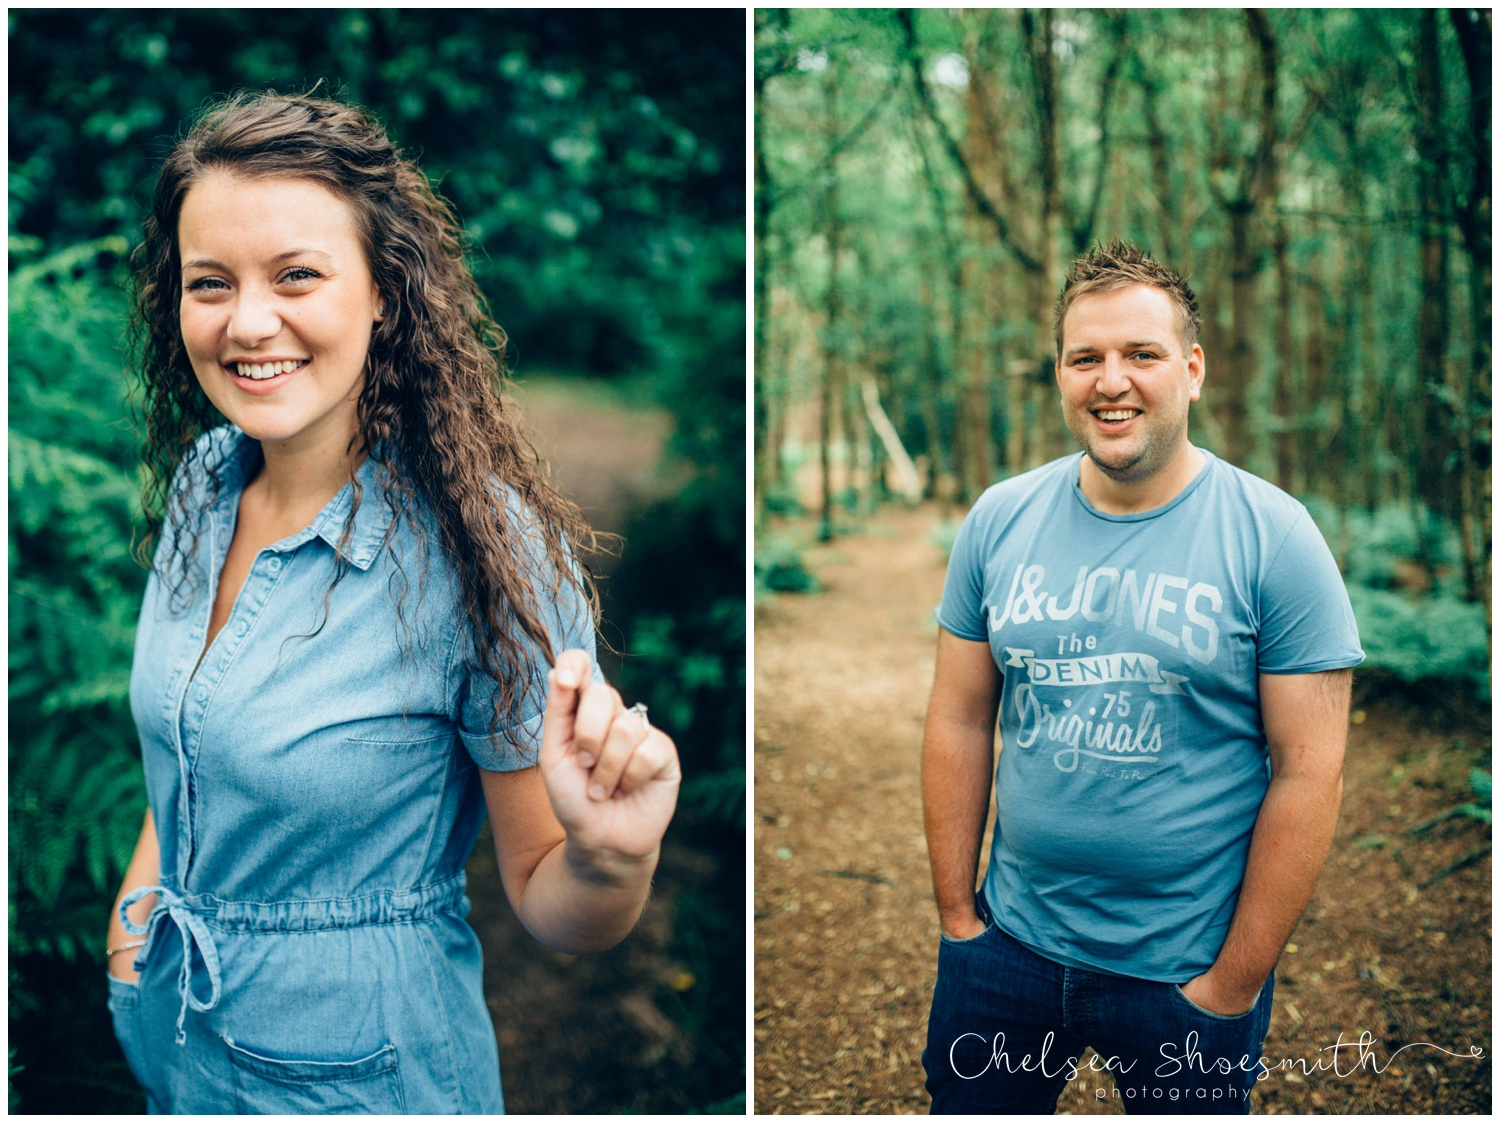 (40 of 75) Bethan & Peter Engagement Shoot Cheshire, Delamere Forest Chelsea Shoesmith Photography